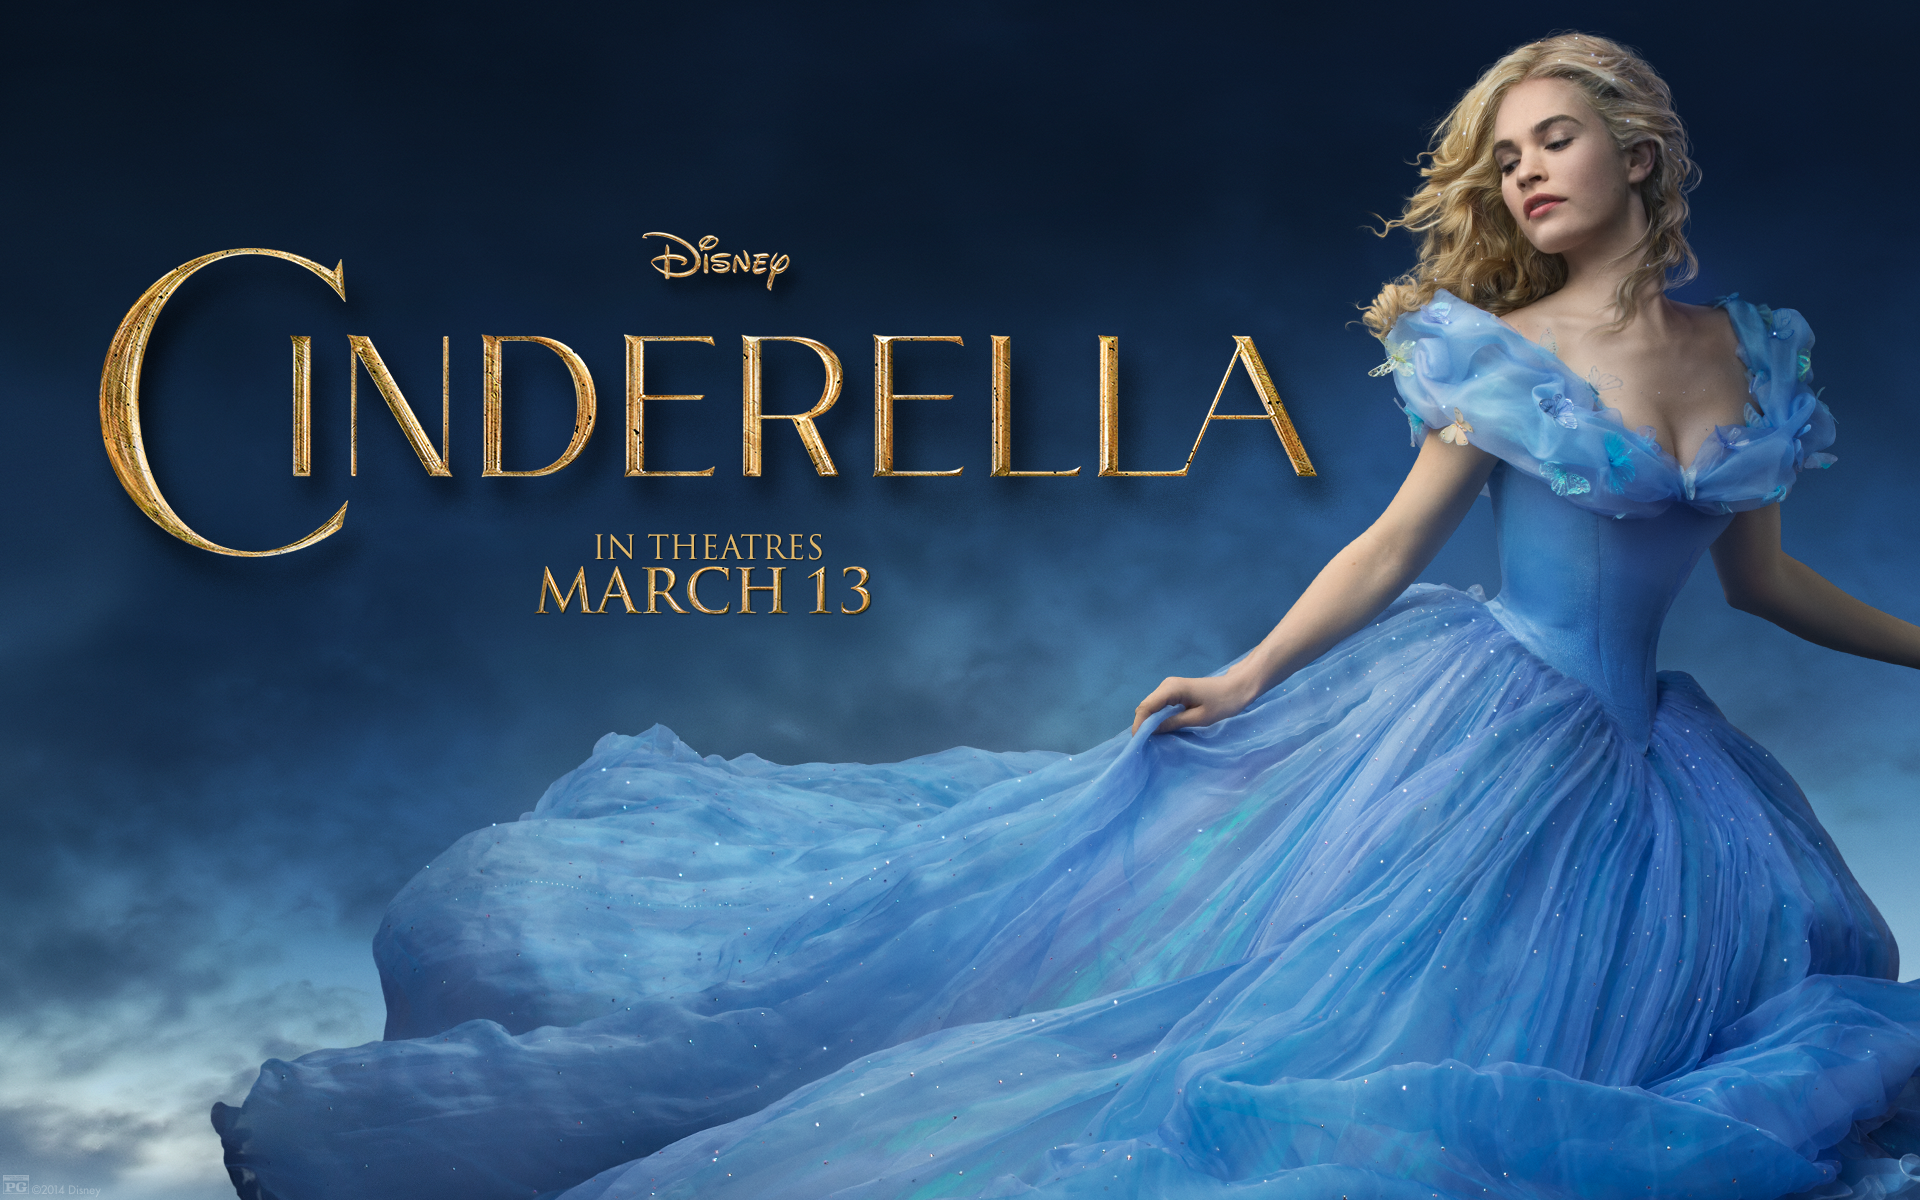 Cinderella' - movie stays true to story - giving depth to roles ...